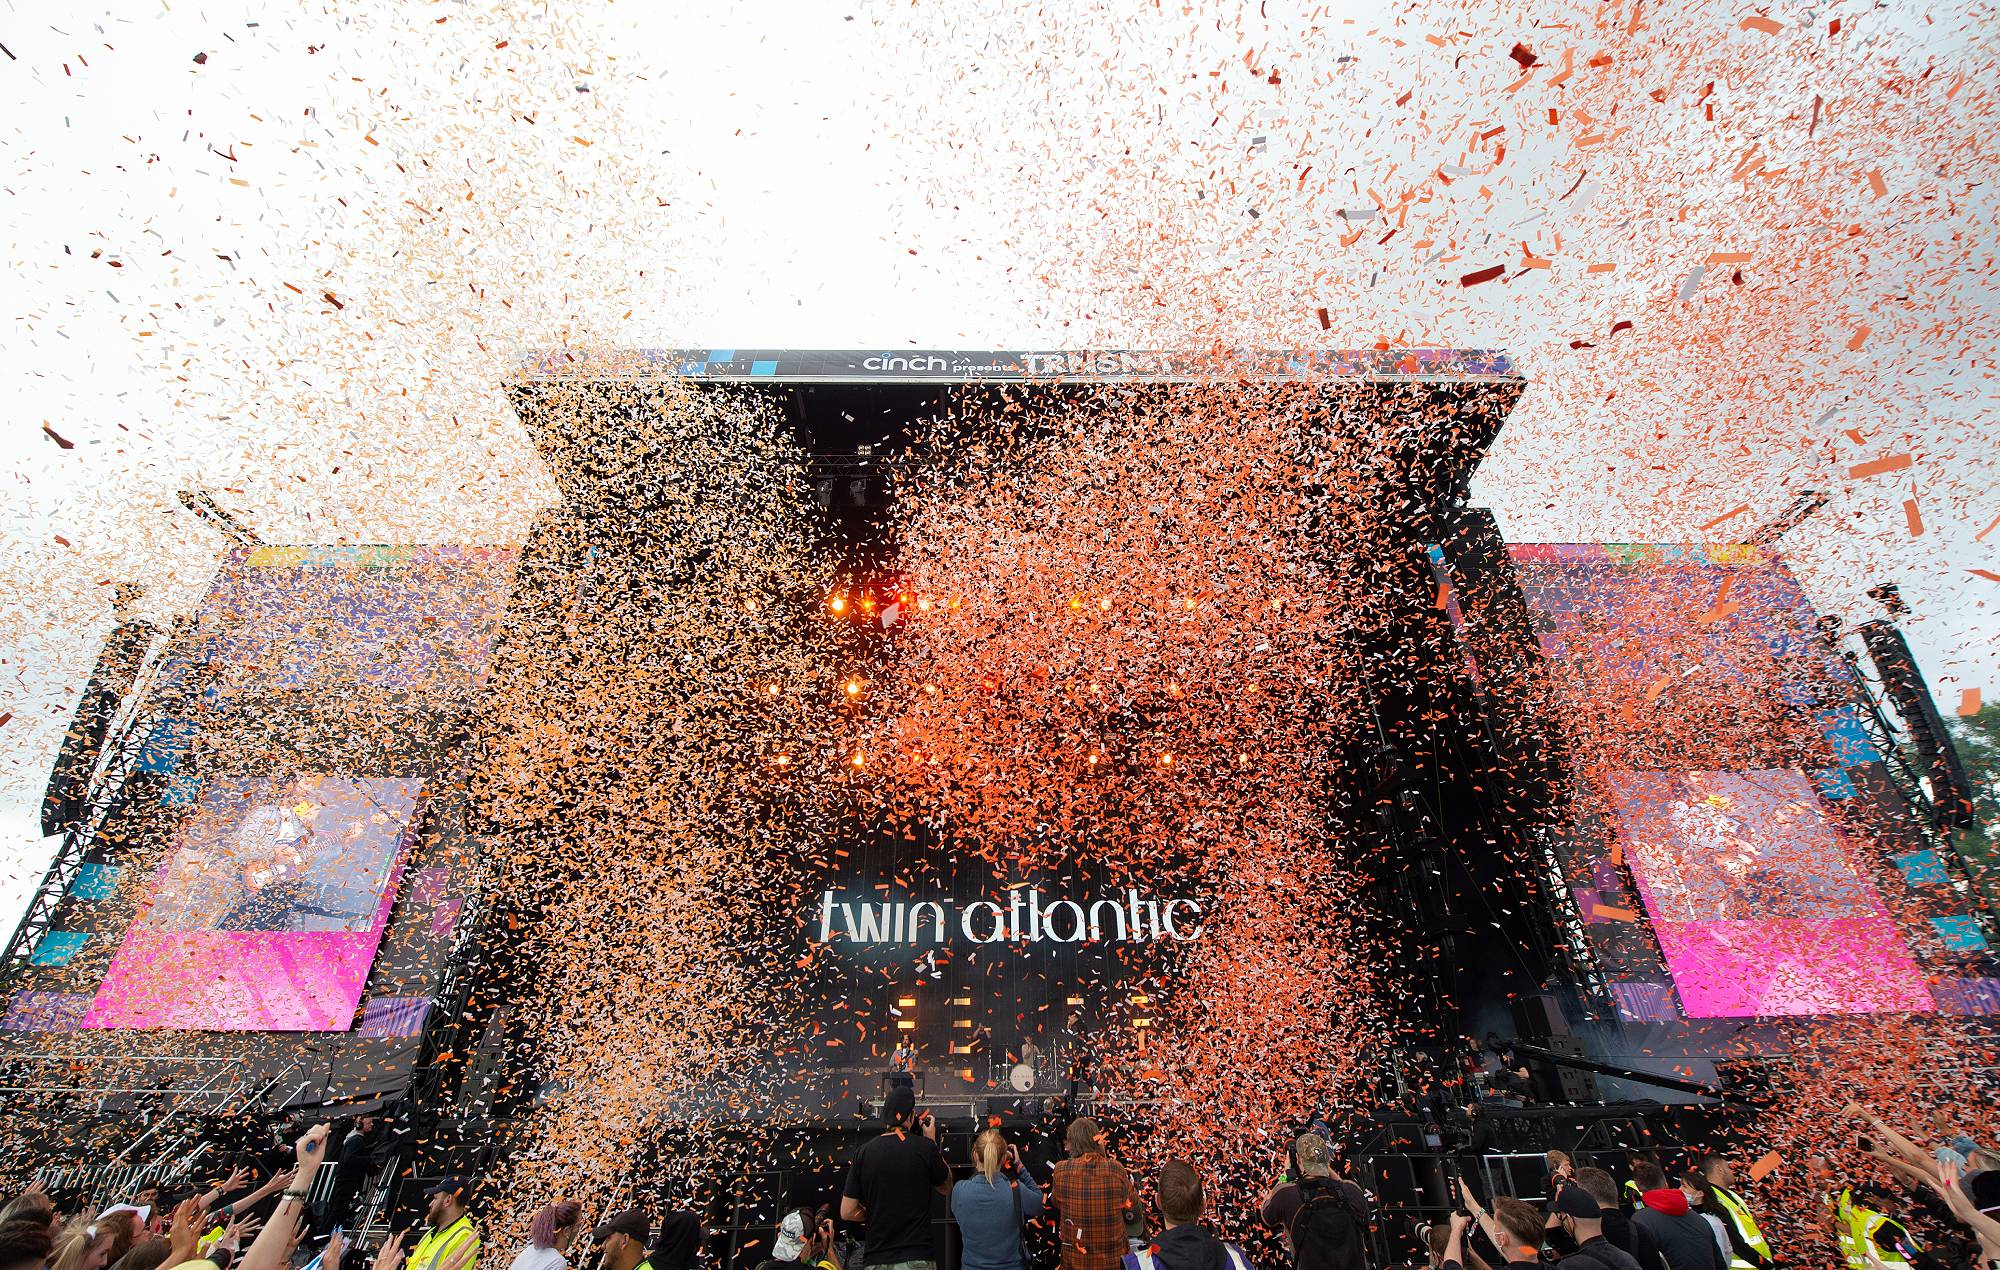 Confetti during Twin Atlantic performance on the Main Stage on the second day of TRNSMT Festival 2021 on September 11, 2021 in Glasgow, Scotland. (Photo by Roberto Ricciuti/Redferns)